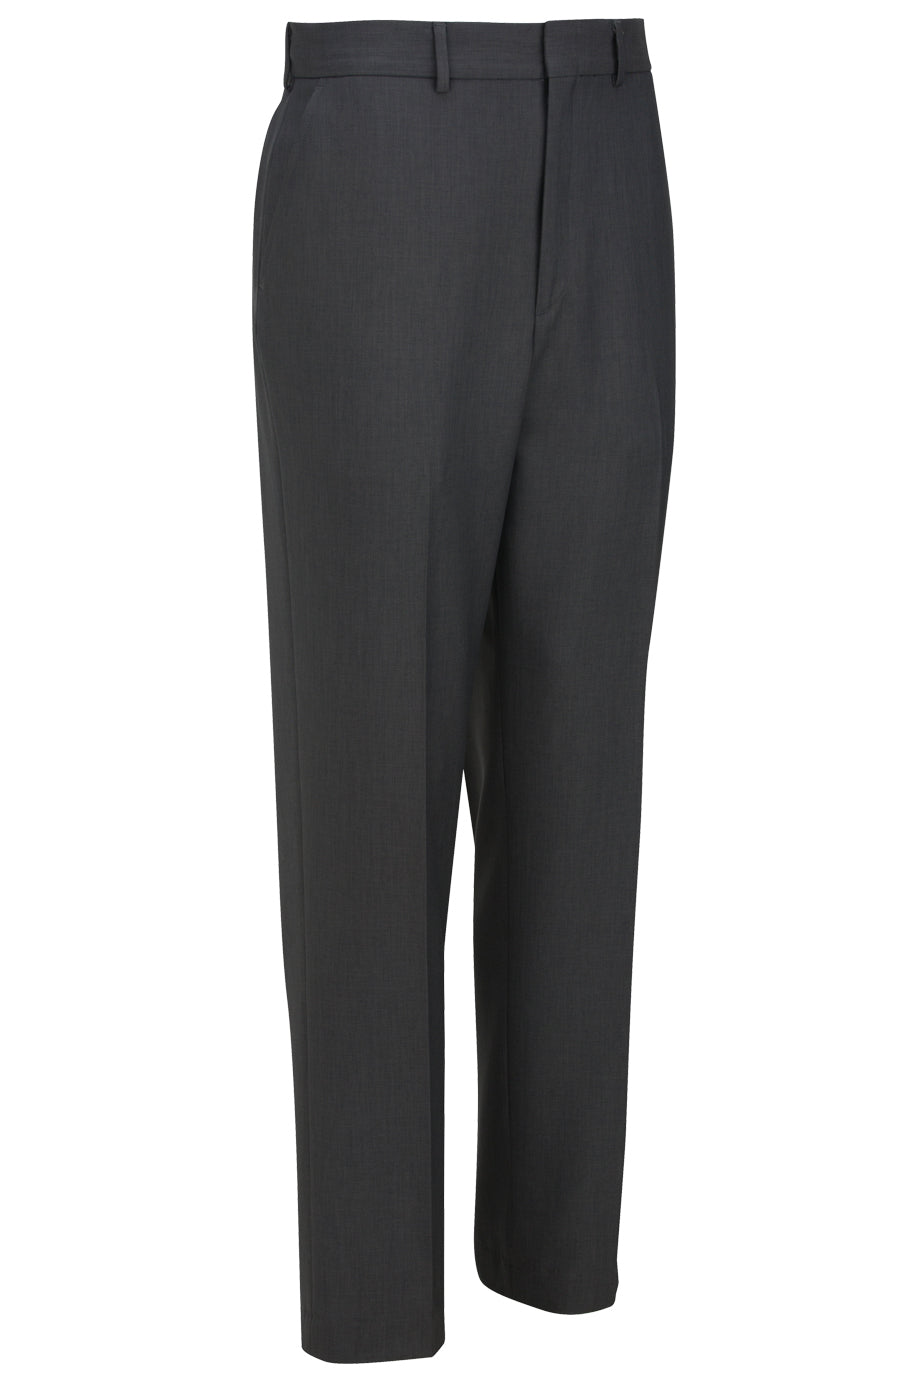 Steel Grey Edwards Mens Synergy Washable Traditional Fit Flat Front Pant - Steel Grey